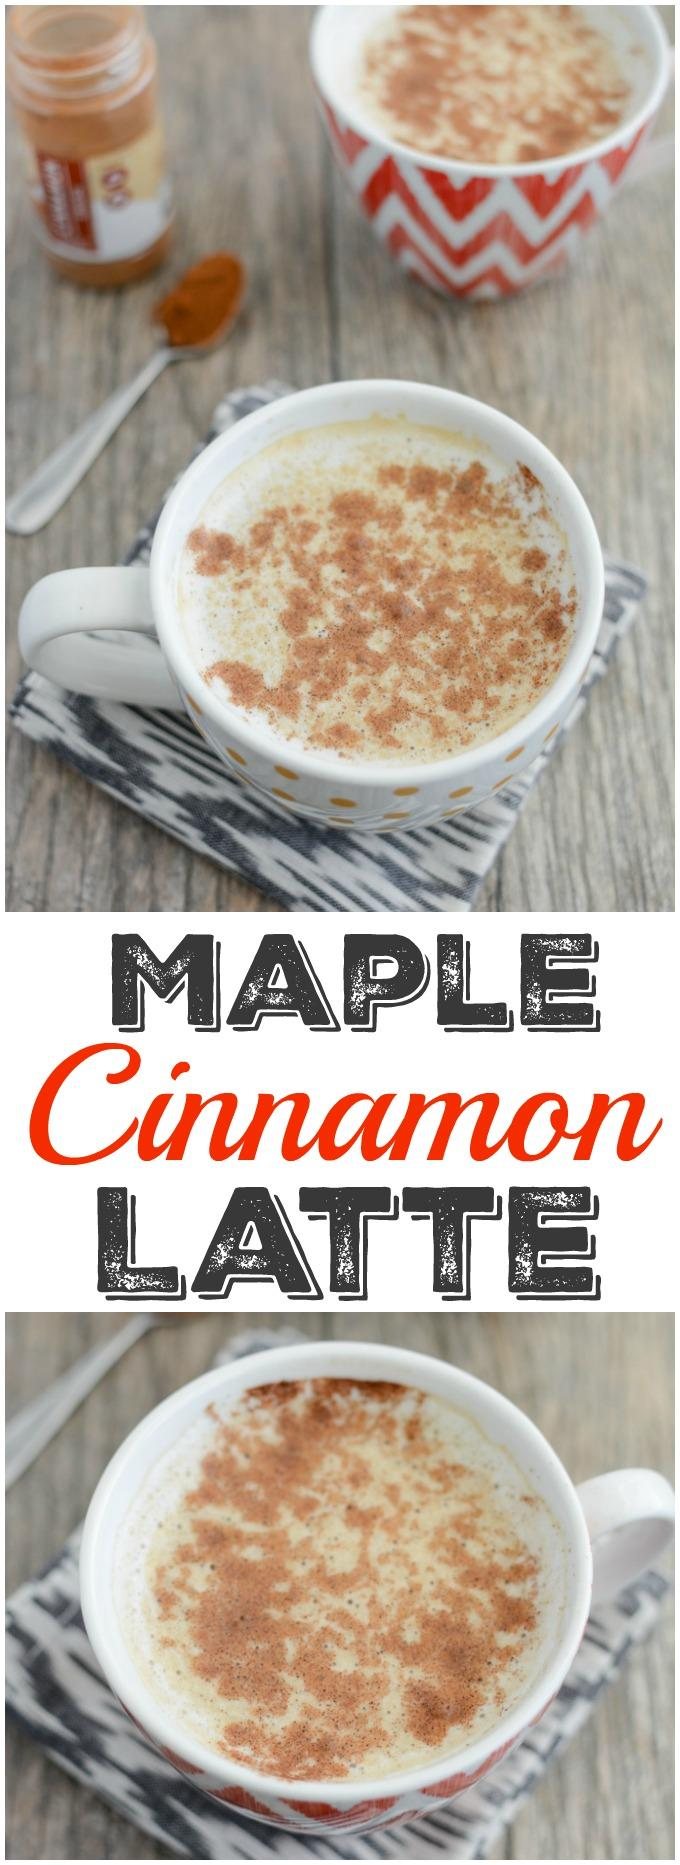 Change up your coffee routine with this Maple Cinnamon Latte. It's easy to make at home and the perfect drink to pair with breakfast on a cool morning.